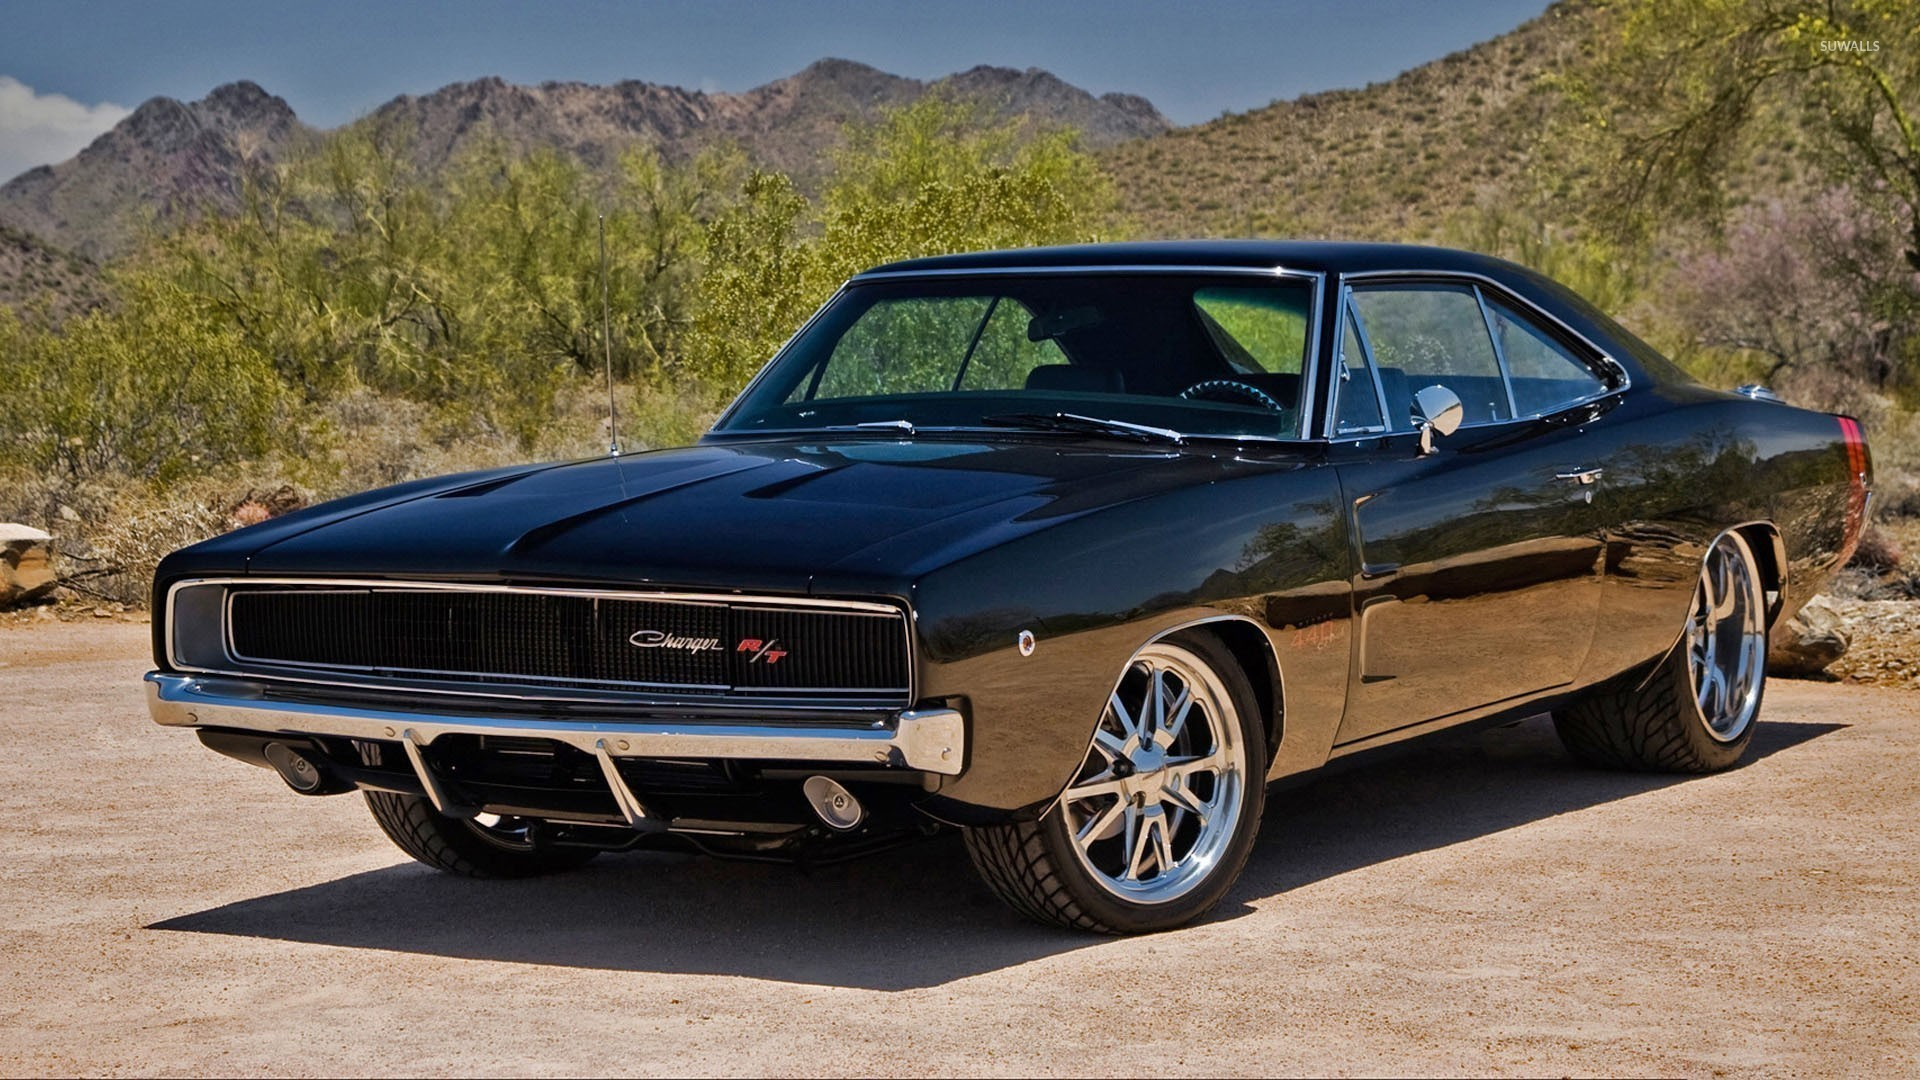 1970 Dodge Charger R/T front side view wallpaper jpg